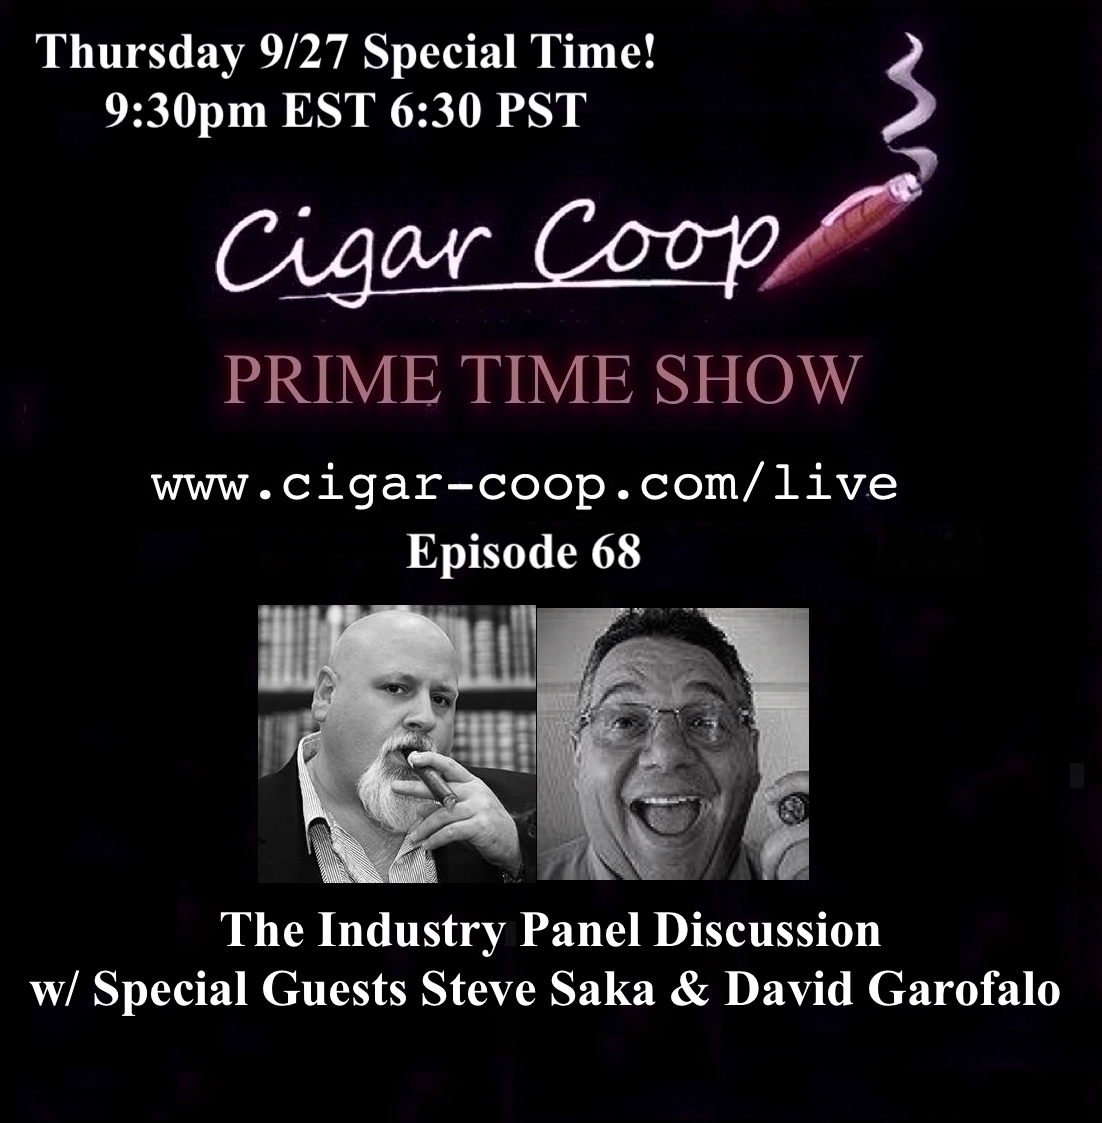 Announcement: Prime Time Show Episode 68 – The Industry Panel Discussion with Saka and Garofalo